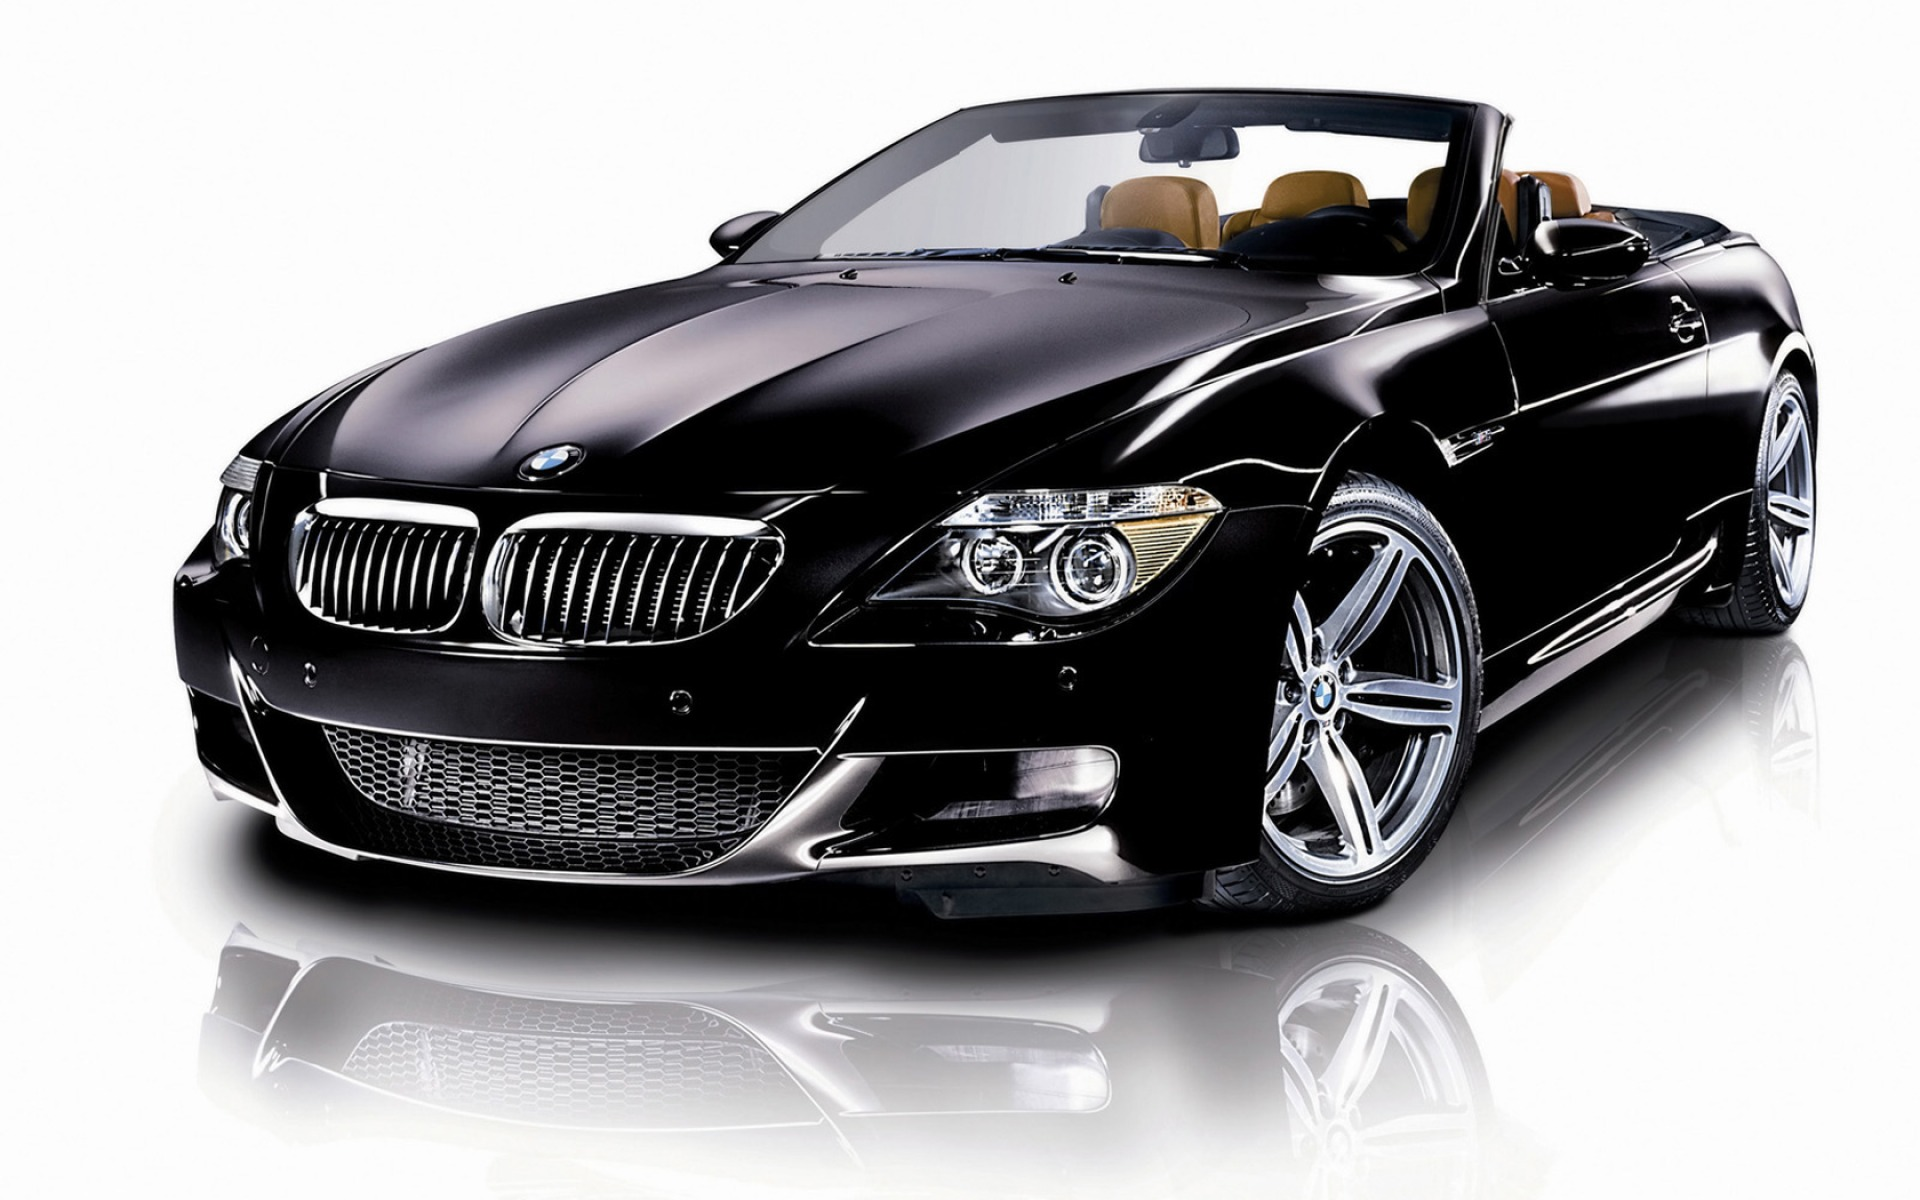 Ultrablogus  Pleasant Bmw Car Wallpaper Wallpapers For Free Download About   With Hot Bmw M Convertible Wallpaper Bmw Cars With Delectable Jeep Indigo Blue Interior Also  Silverado Interior In Addition  Ford Mustang Interior And Ferrari  Scuderia Interior As Well As  Dodge Neon Interior Additionally Hyundai Accent Interior From Allfreedownloadcom With Ultrablogus  Hot Bmw Car Wallpaper Wallpapers For Free Download About   With Delectable Bmw M Convertible Wallpaper Bmw Cars And Pleasant Jeep Indigo Blue Interior Also  Silverado Interior In Addition  Ford Mustang Interior From Allfreedownloadcom